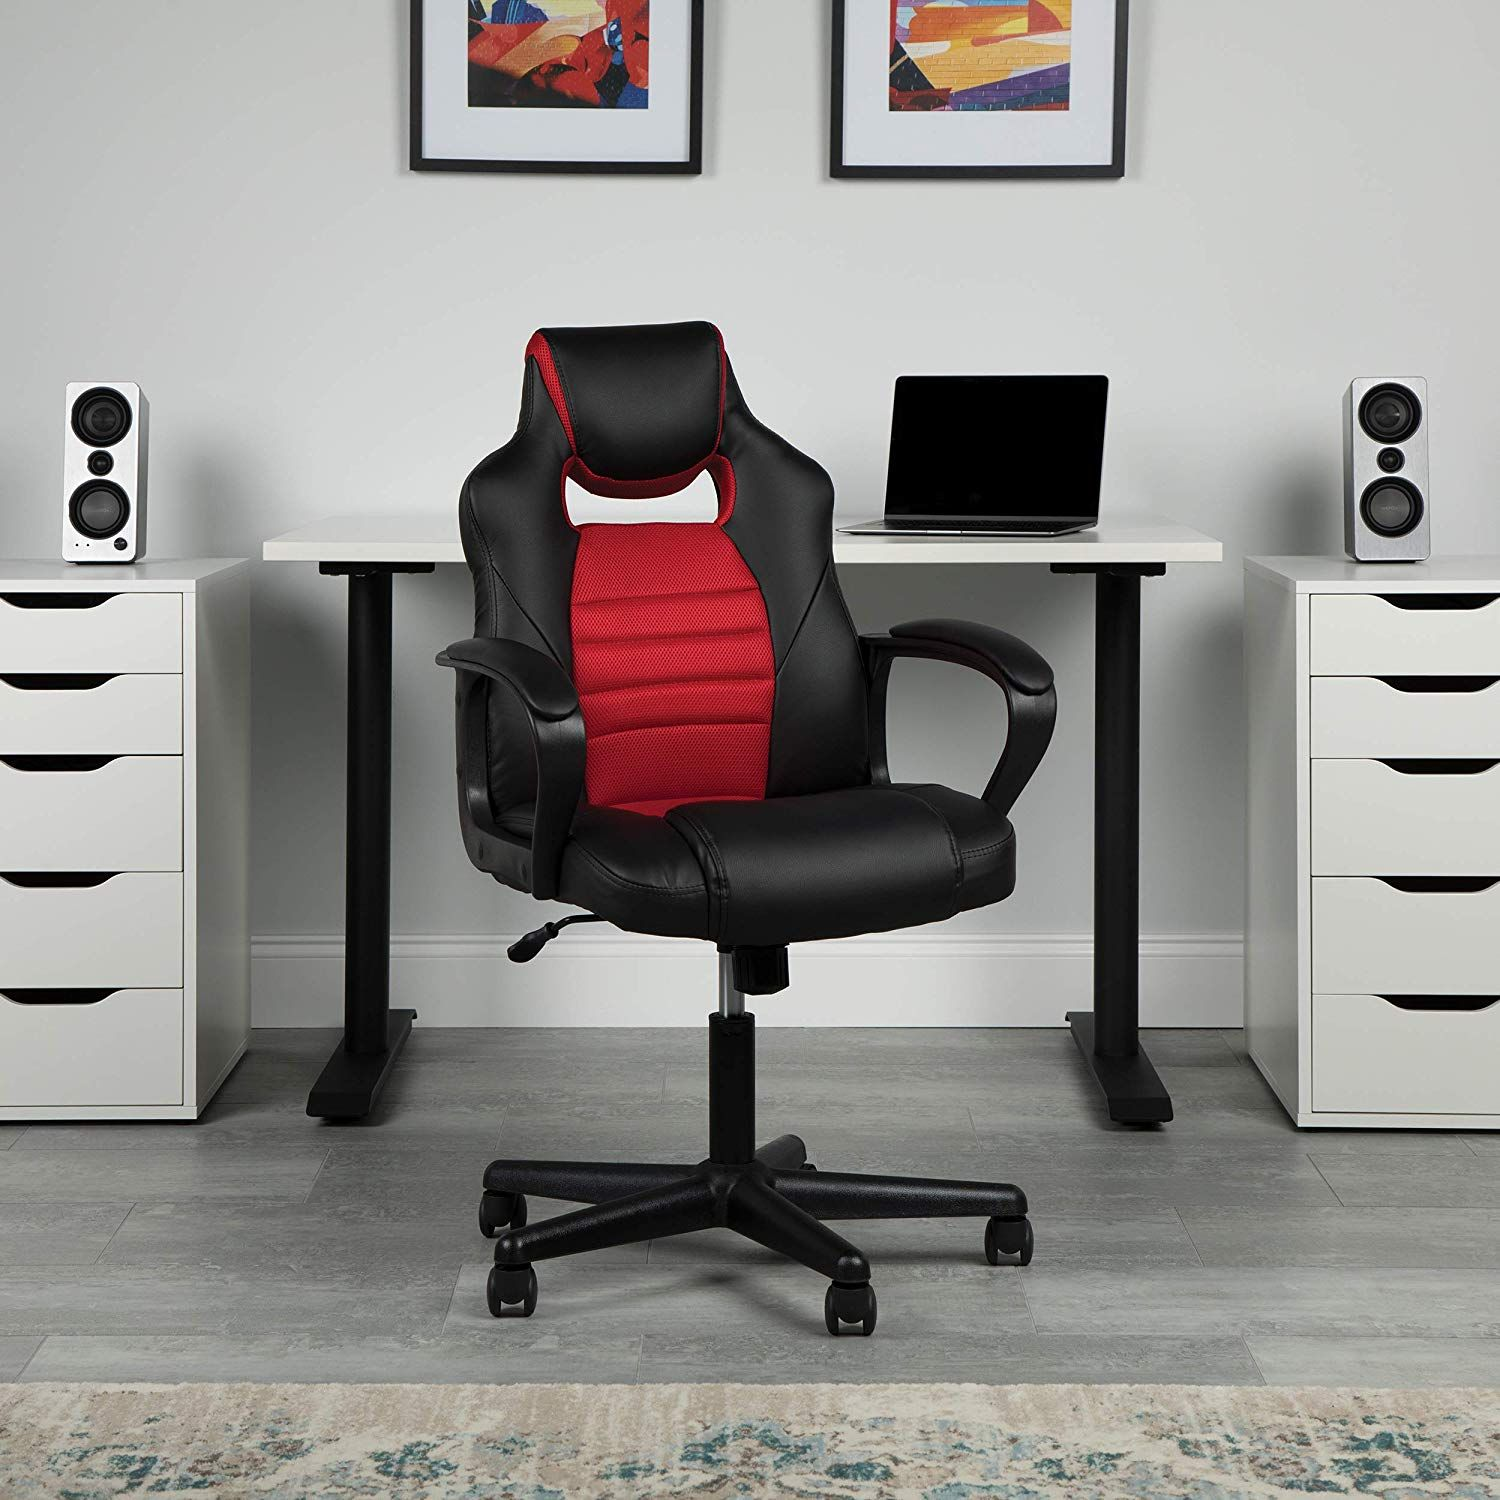 53.17 (reg 116) Essentials Gaming Chair Another great